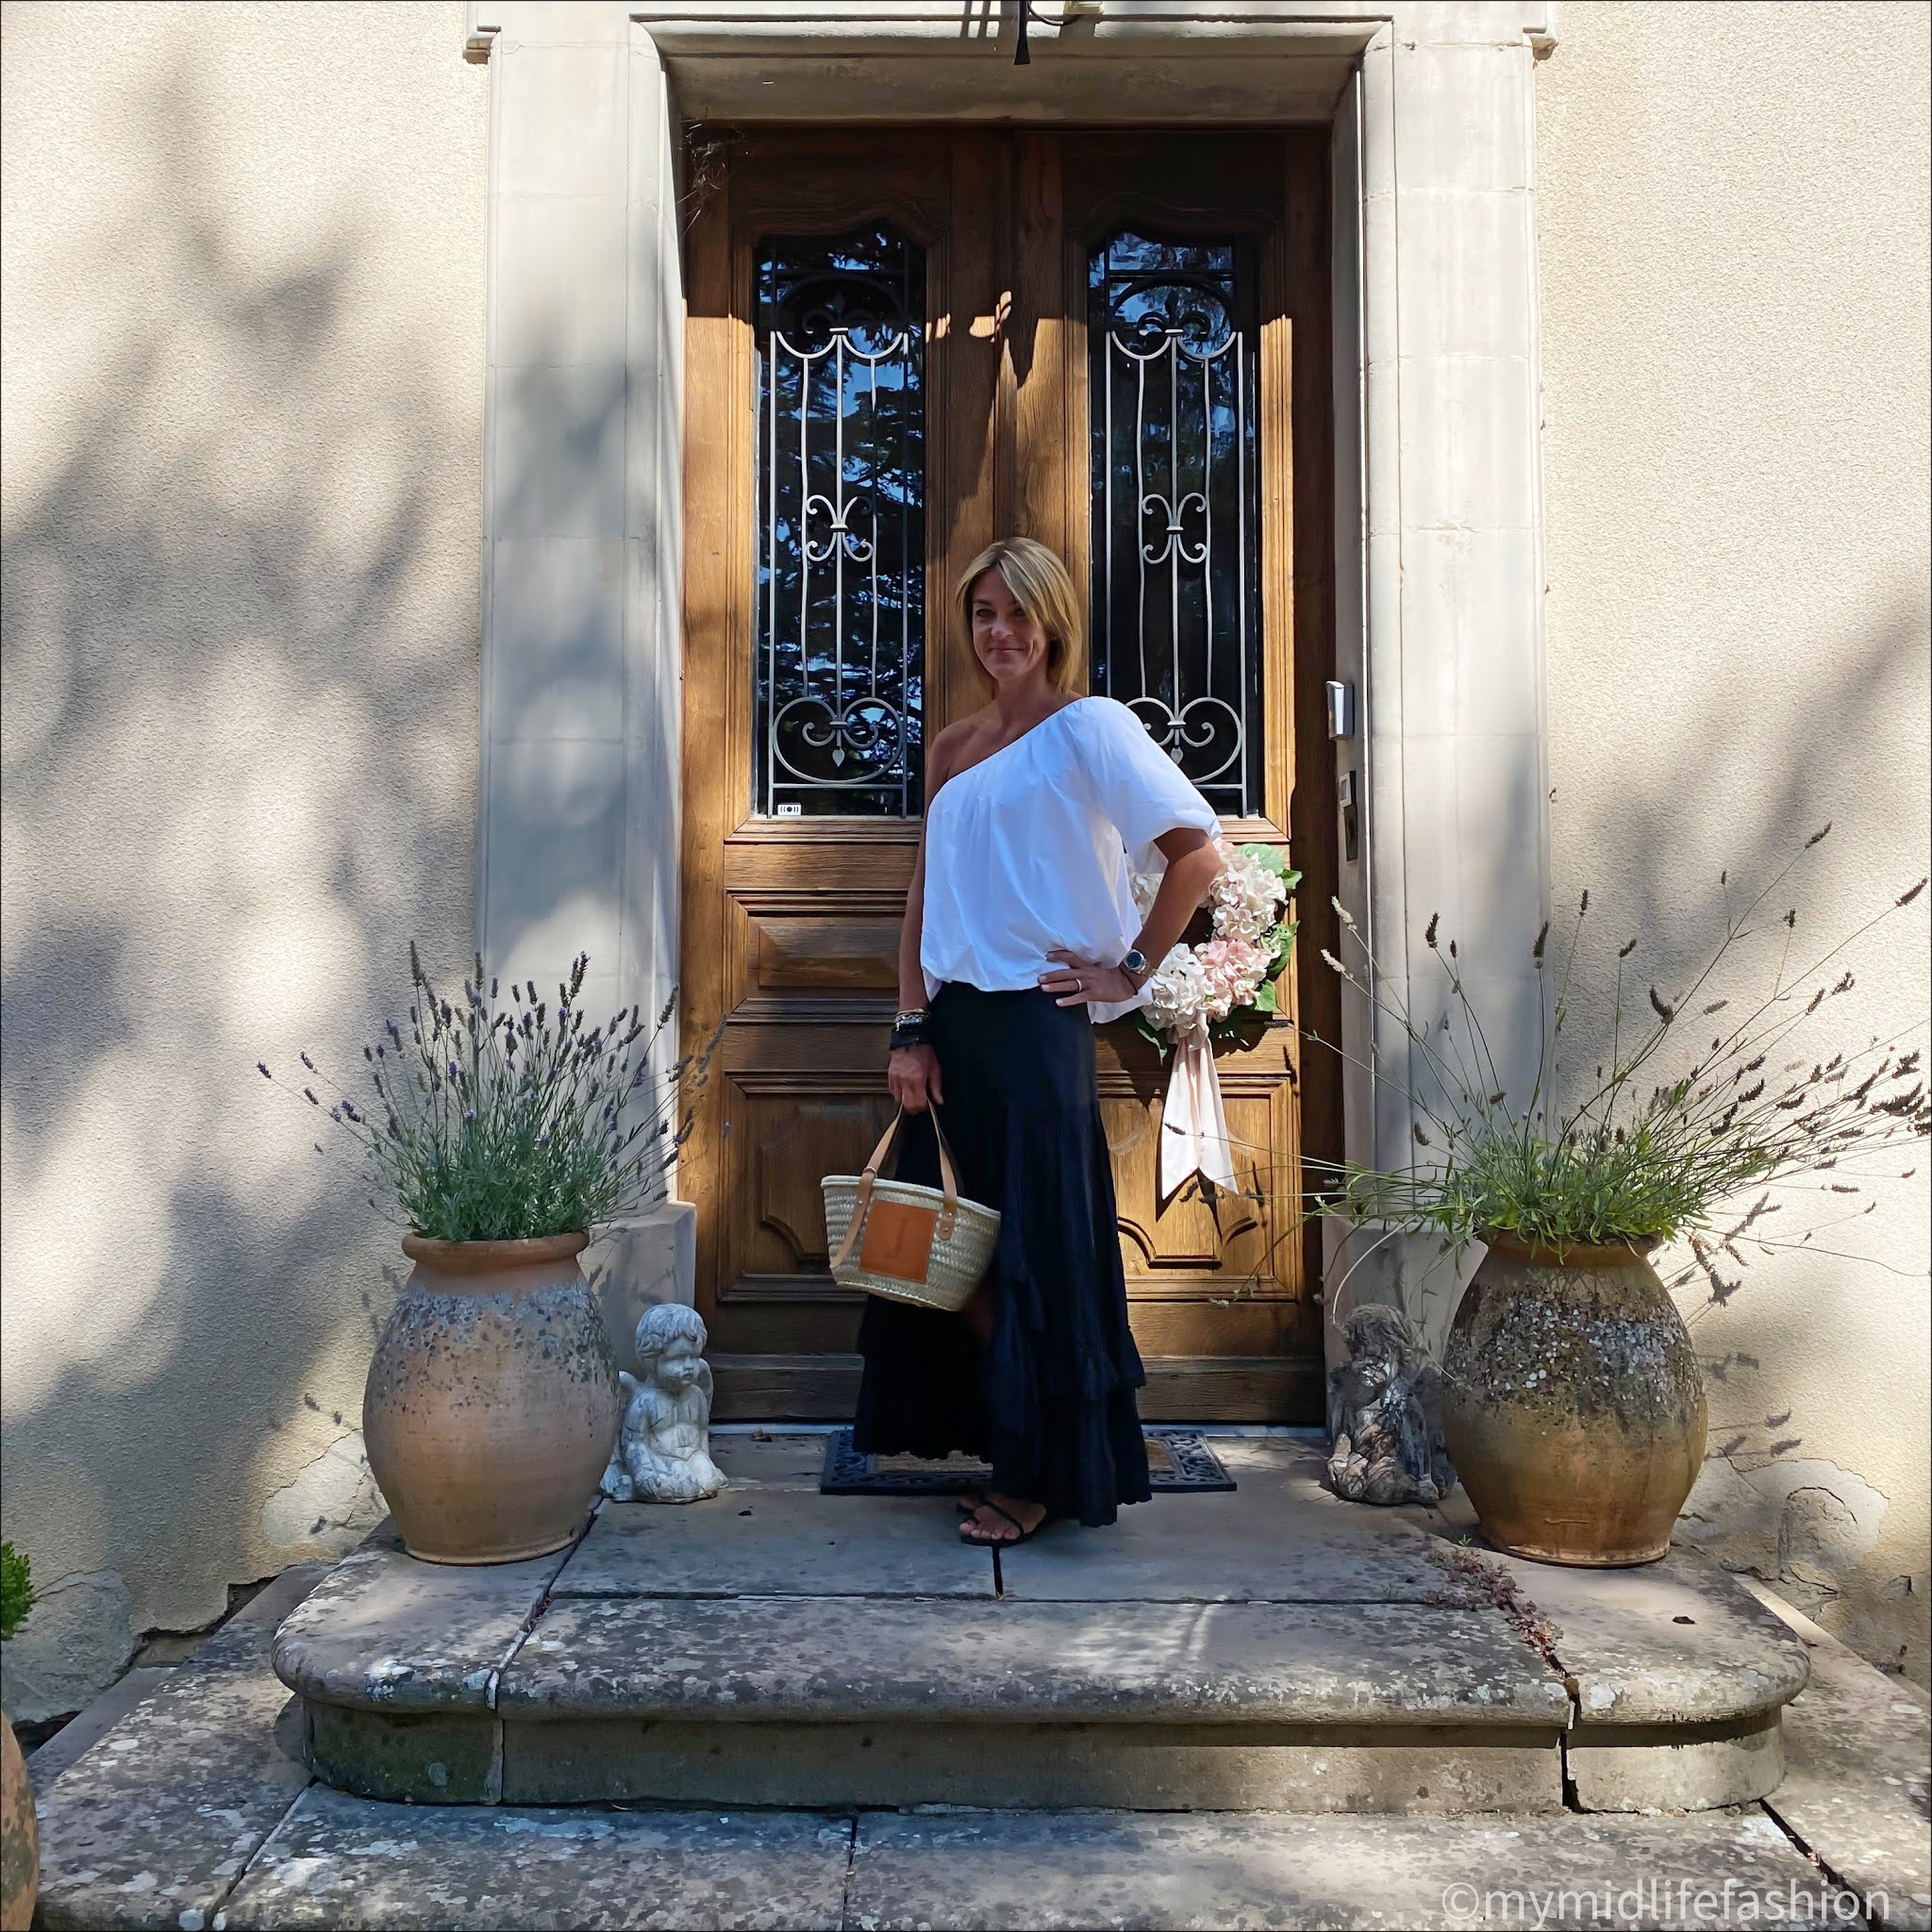 my midlife fashion, Ancient Greek eleftheria braided leather sandals, zara off the shoulder top, Isabel Marant Etoile tiered cotton maxi skirt, lada jewelry small tote basket